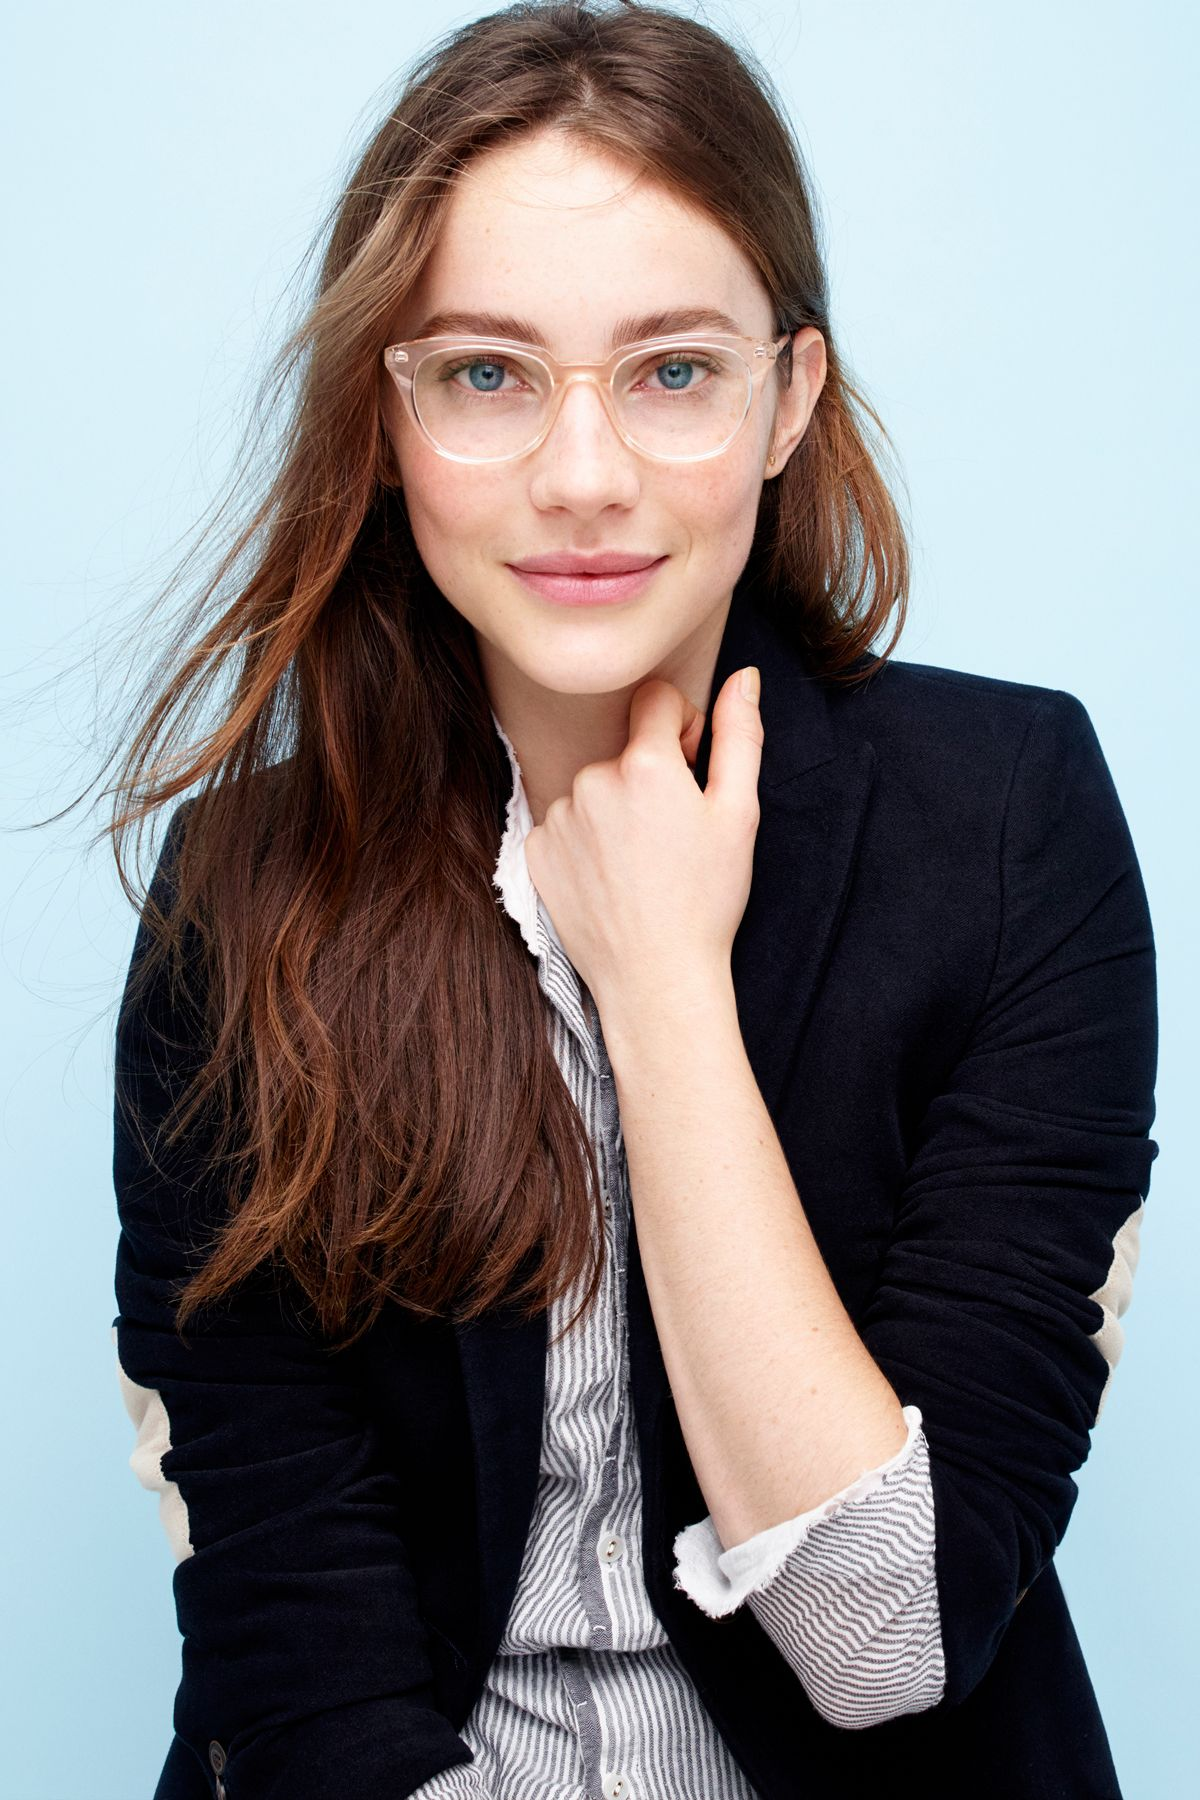 8b9004a59a11 Five new shapes crafted from premium acetate complement returning knockouts  constructed from Japanese titanium in new hues. Explore our entire Winter  2015 ...